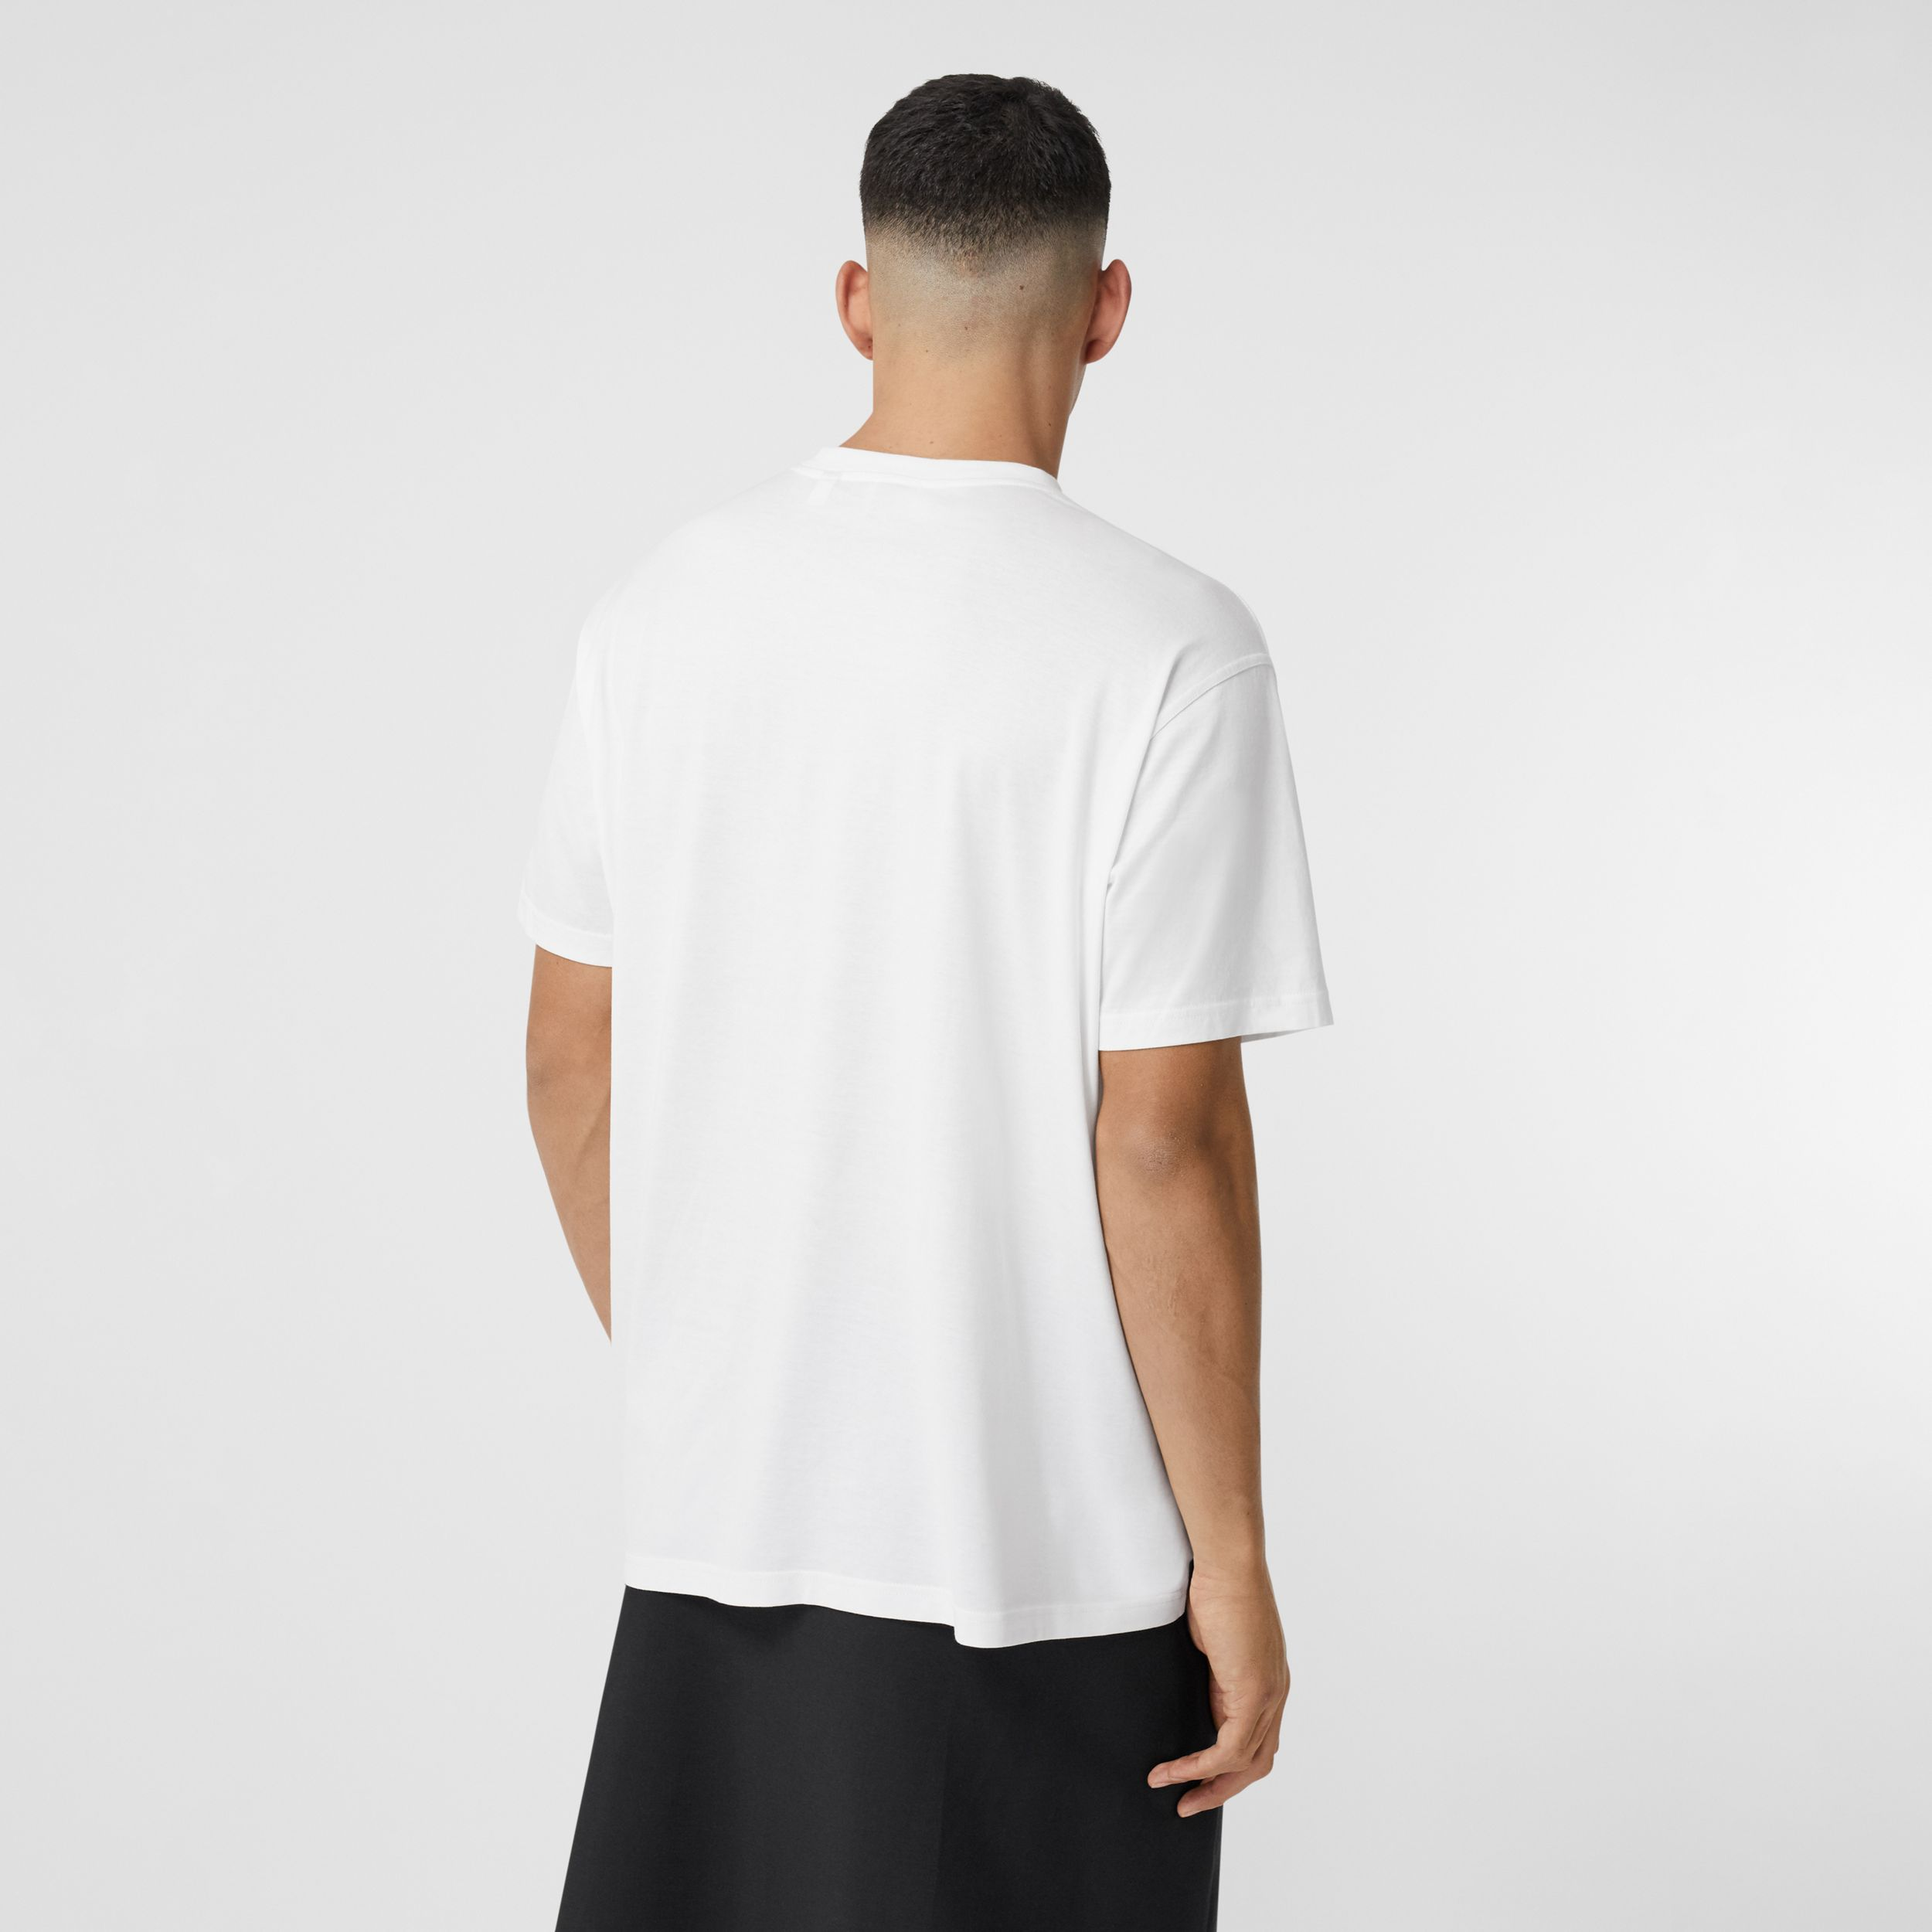 Montage Print Cotton Oversized T-shirt in Optic White - Men | Burberry Australia - 3